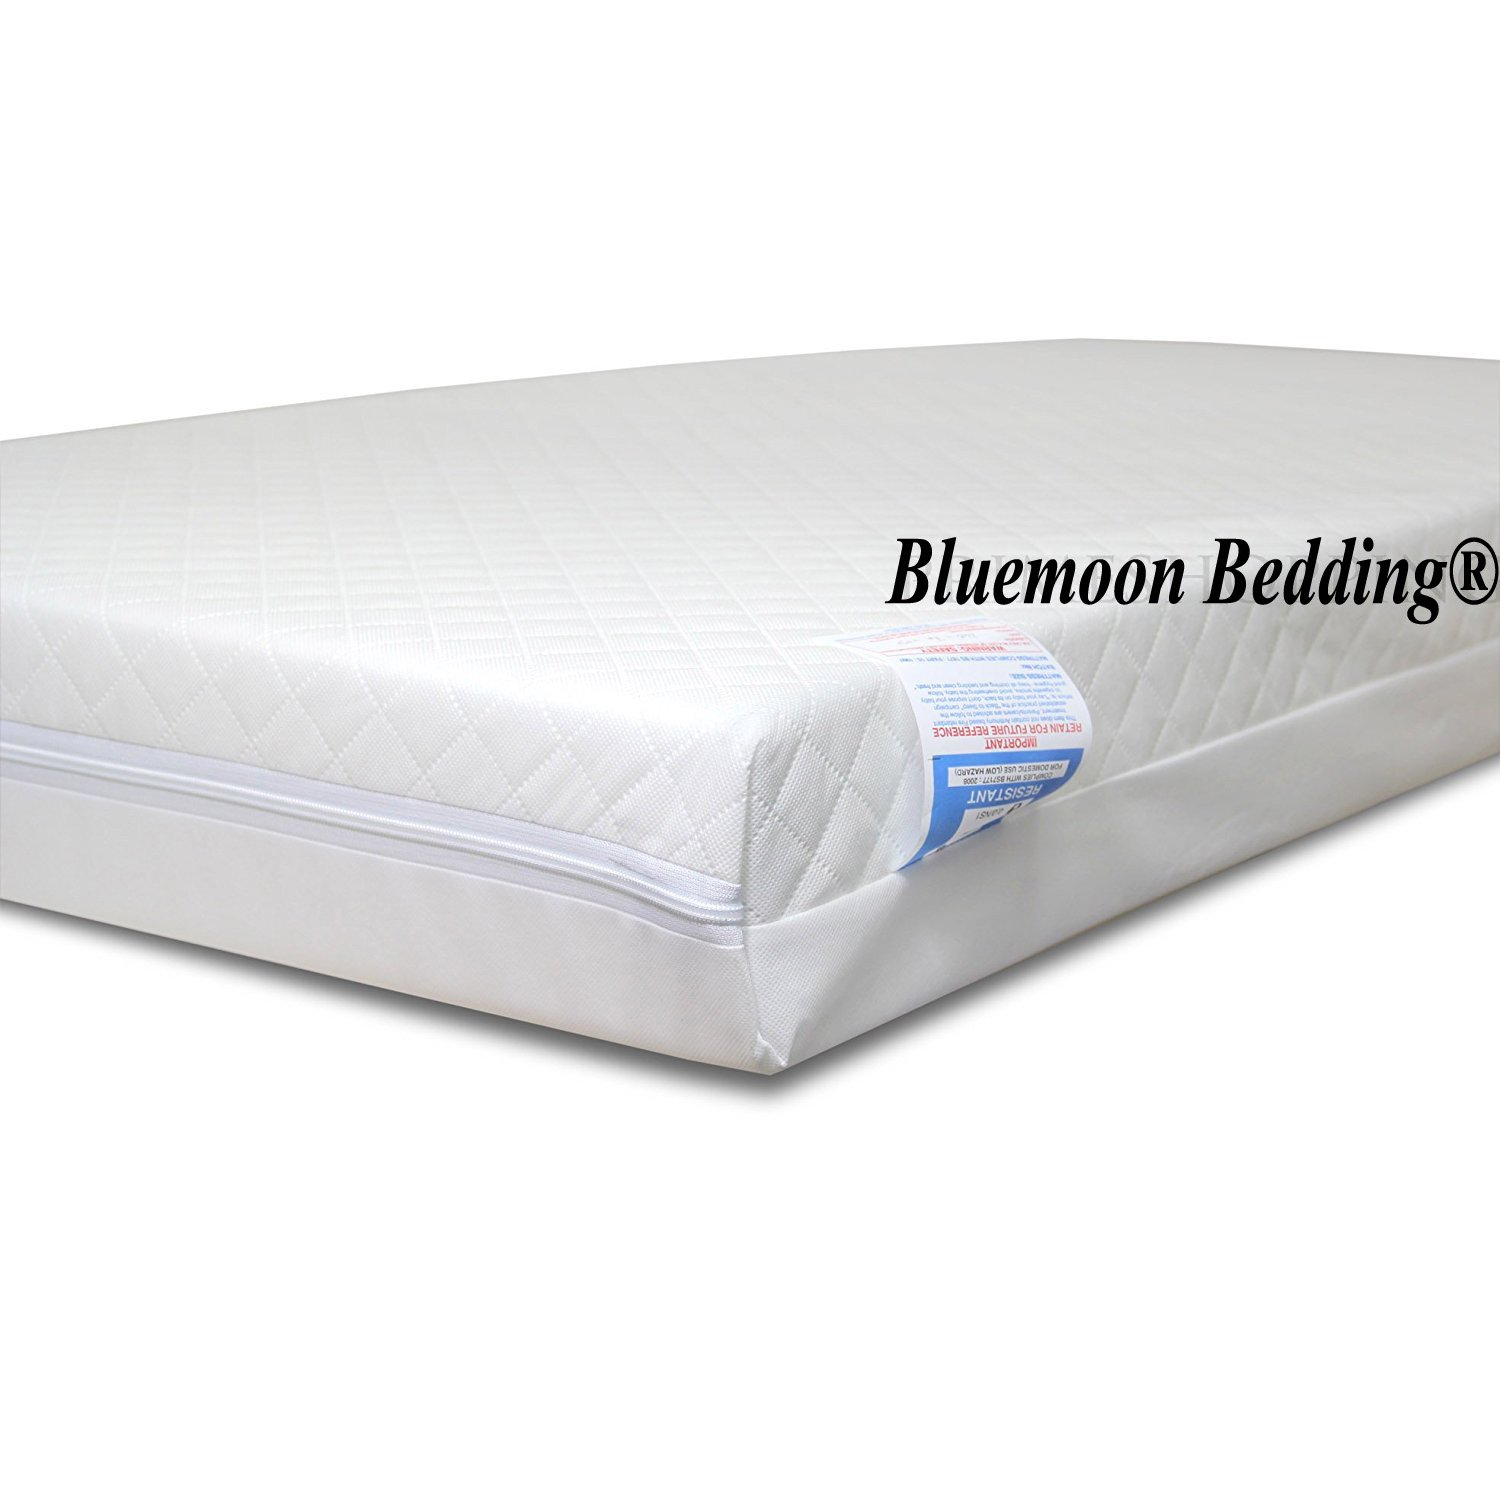 Fully Breathable Standard Travel Cot Mattress (93 x 66 x 7.5 cm)